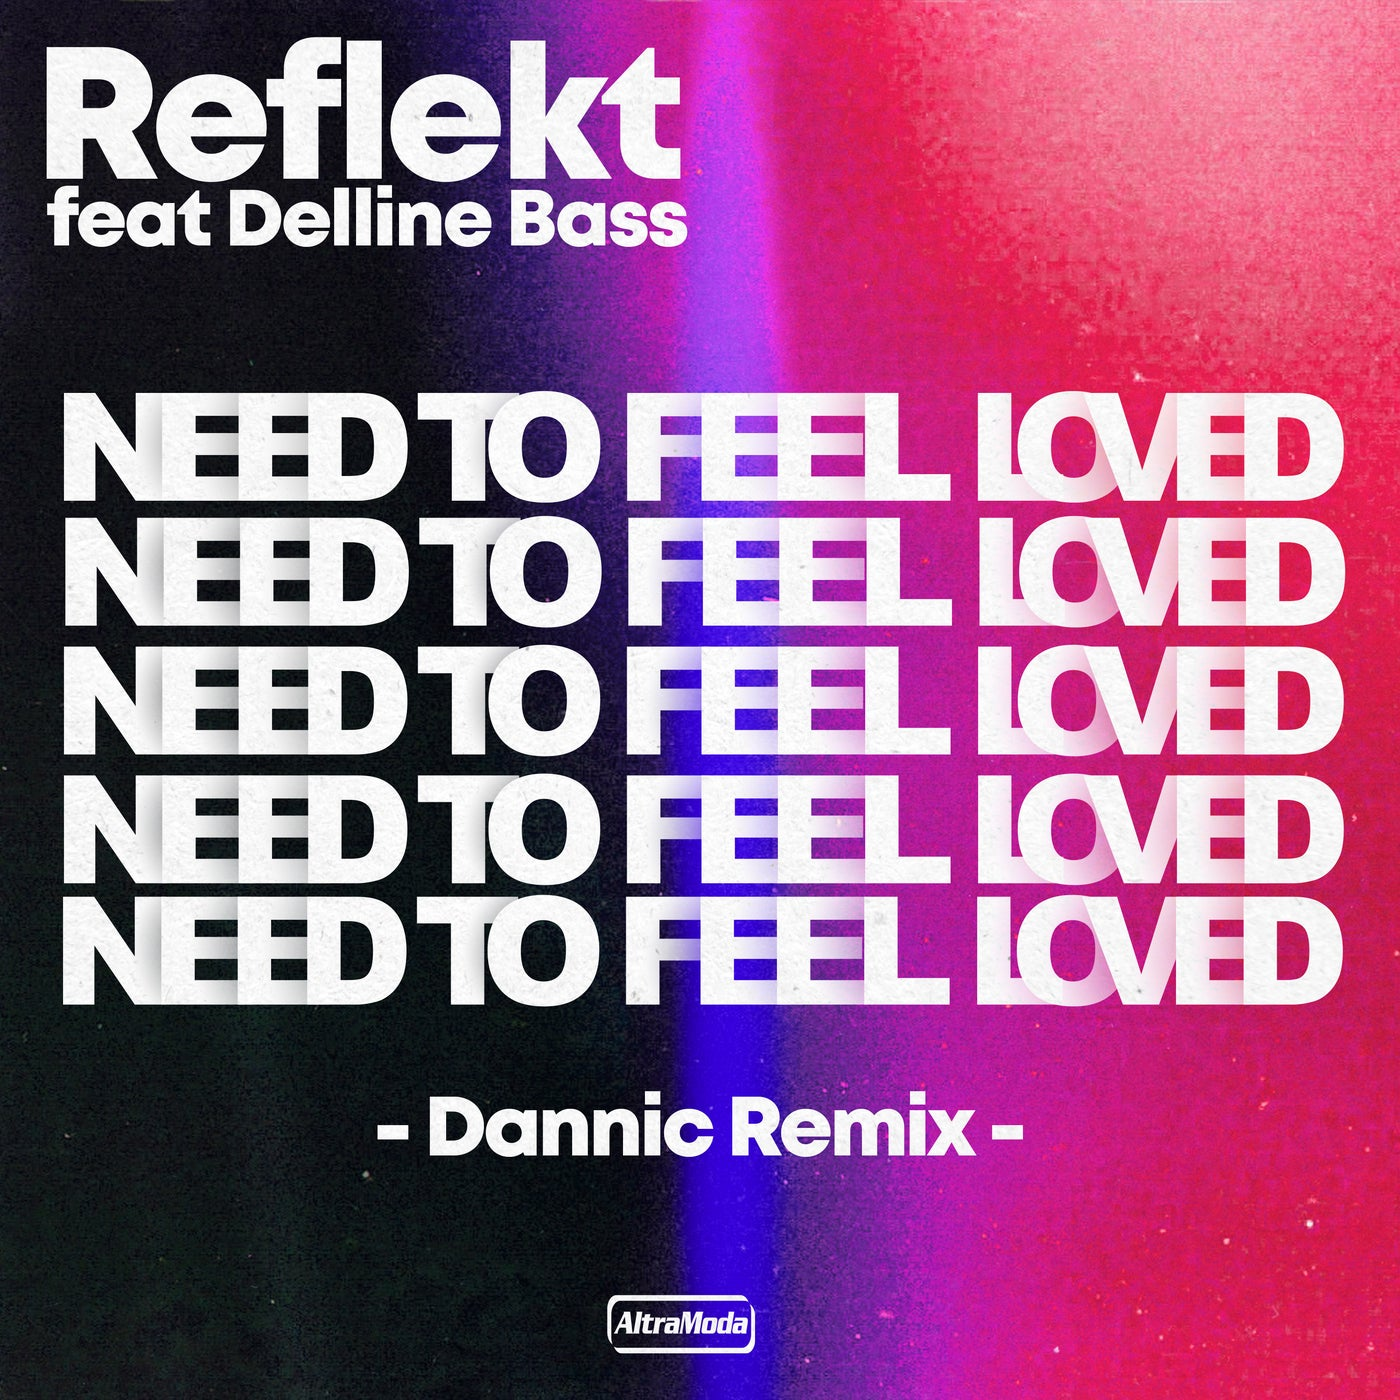 Need To Feel Loved feat. Delline Bass (Dannic Extended Remix)